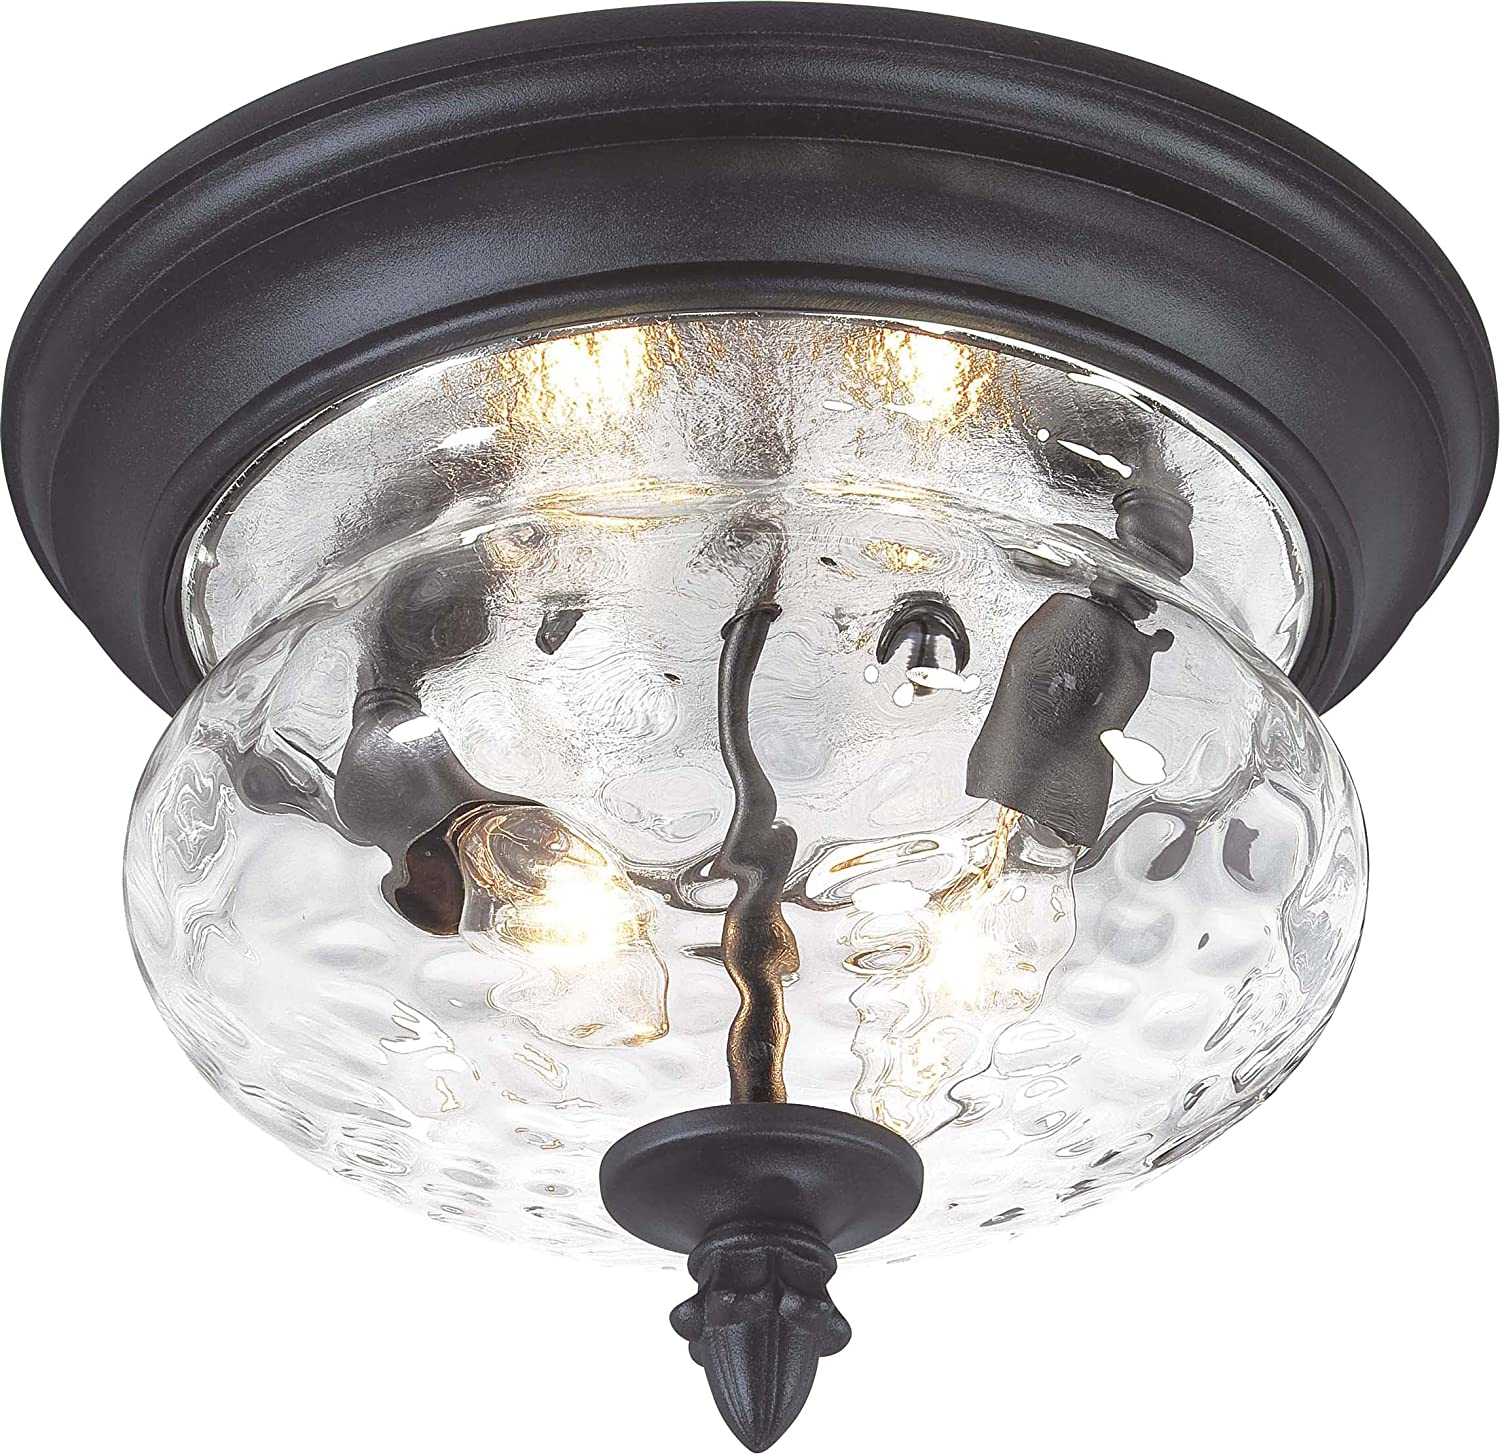 Minka Lavery Flush Mount Ceiling Light Round 9909-1-66 2 Light 80 watt (8 H x 11 W) Black